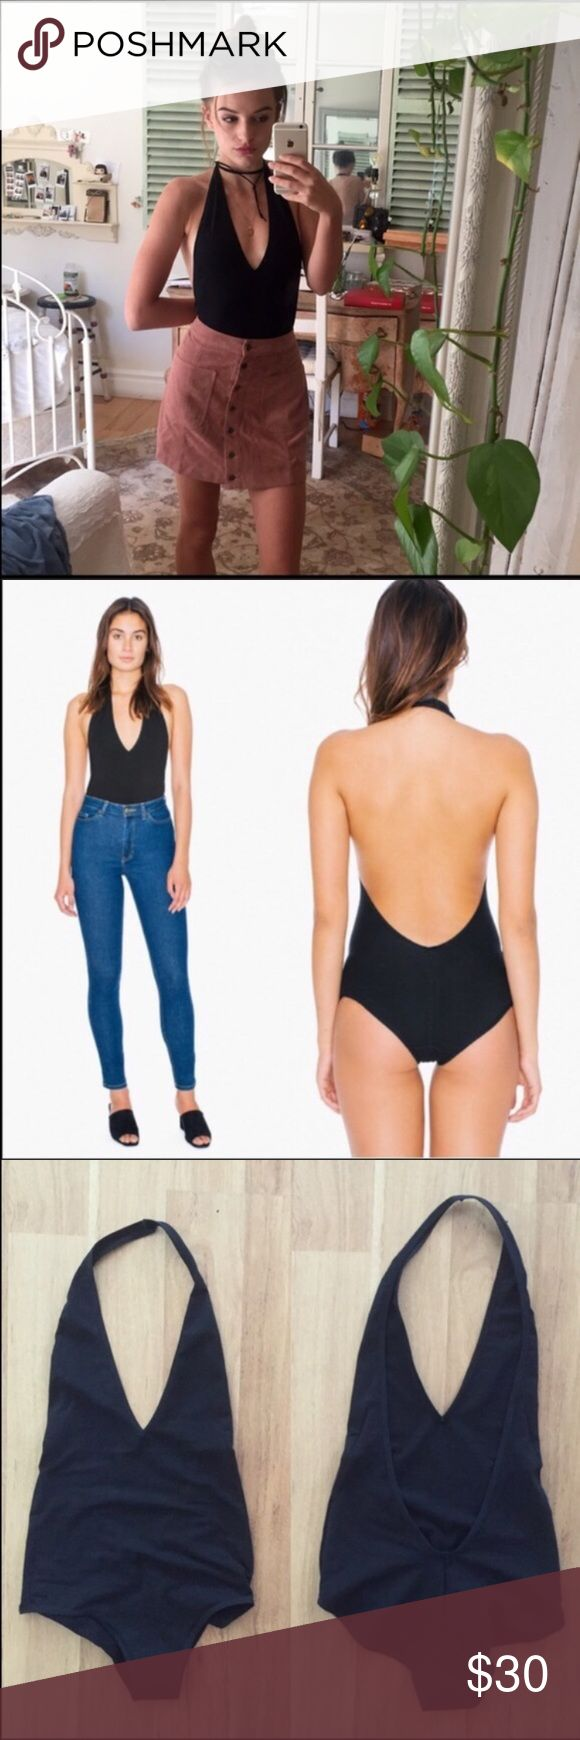 New American Apparel Black Surplice Bodysuit ⚜️I love receiving offers through the offer button!⚜️  Brand new! Material is 95% cotton and 5% elastane. New in plastic = NWT American Apparel Tops